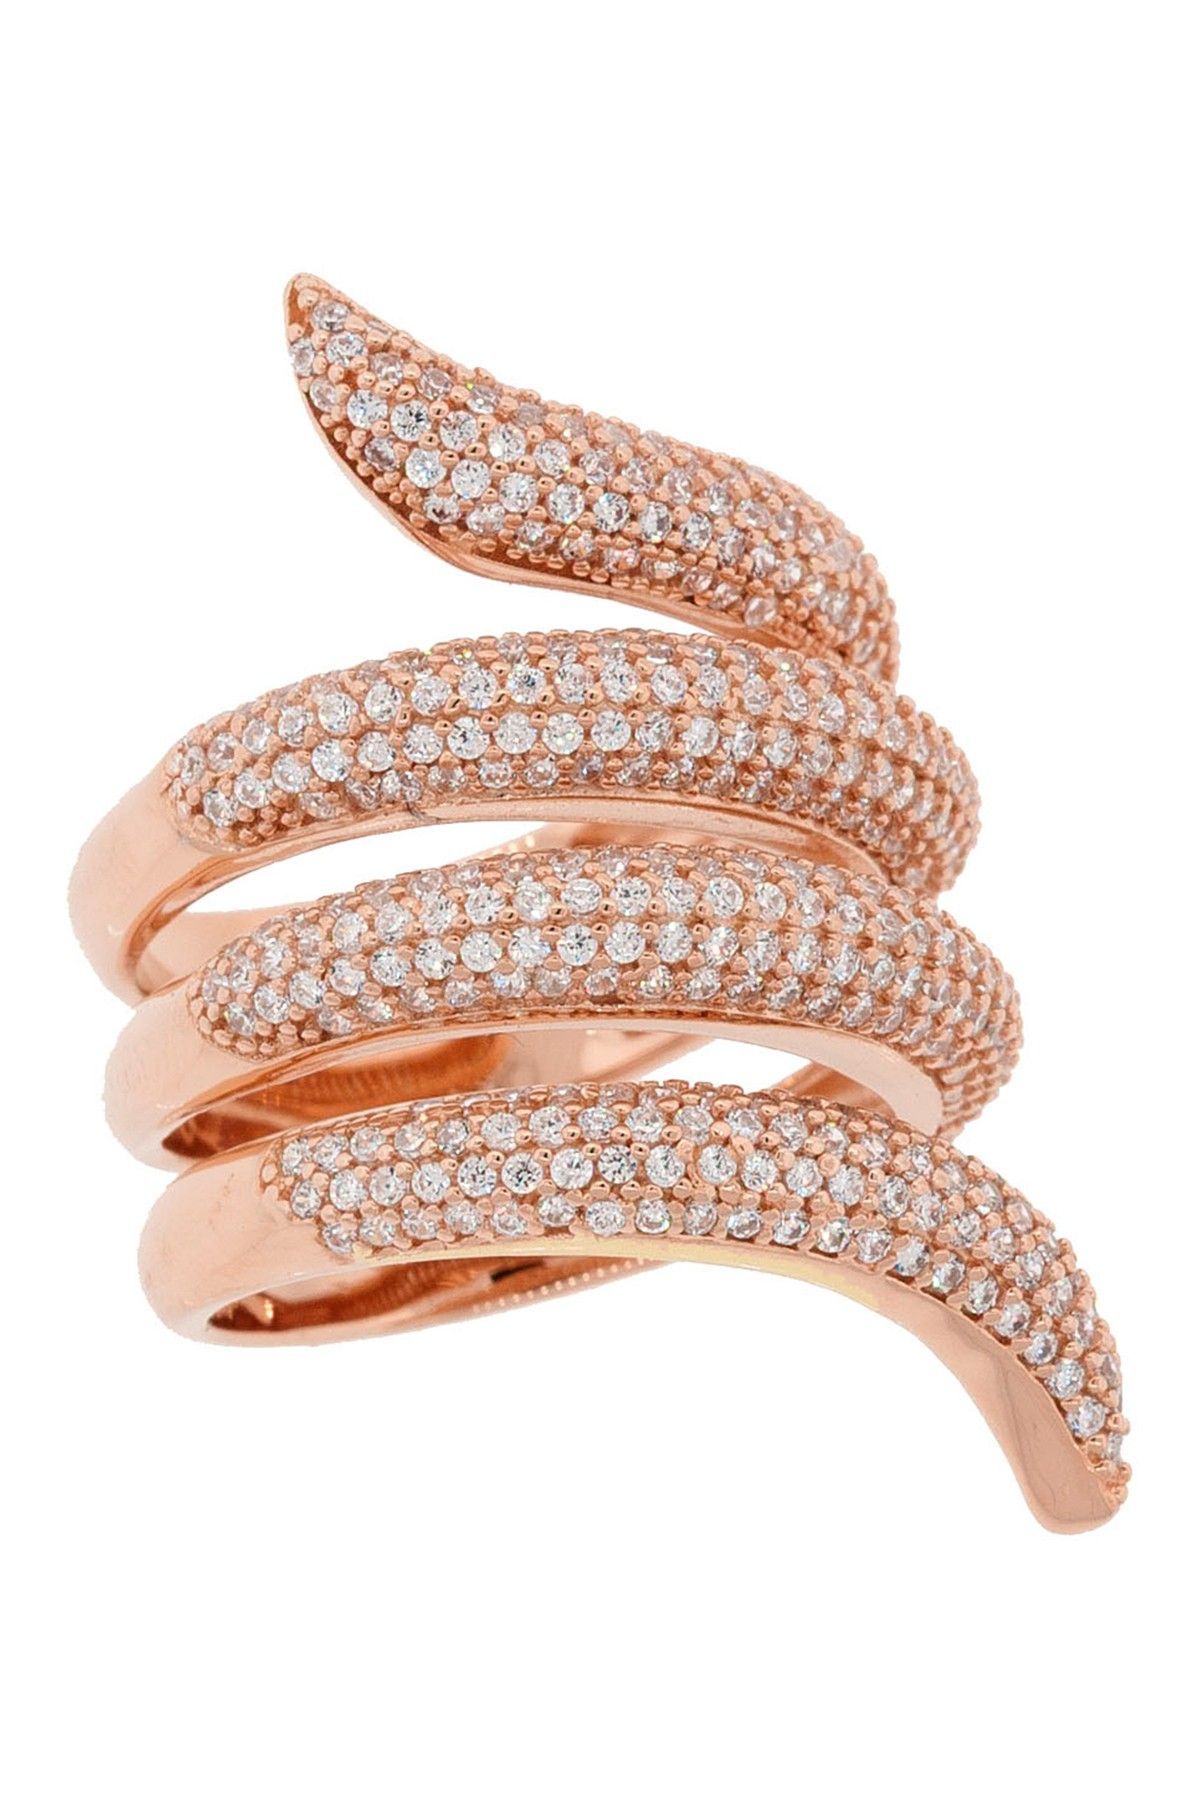 18K Rose Gold Plated Sterling Silver Pave CZ Wrap Ring on @HauteLook